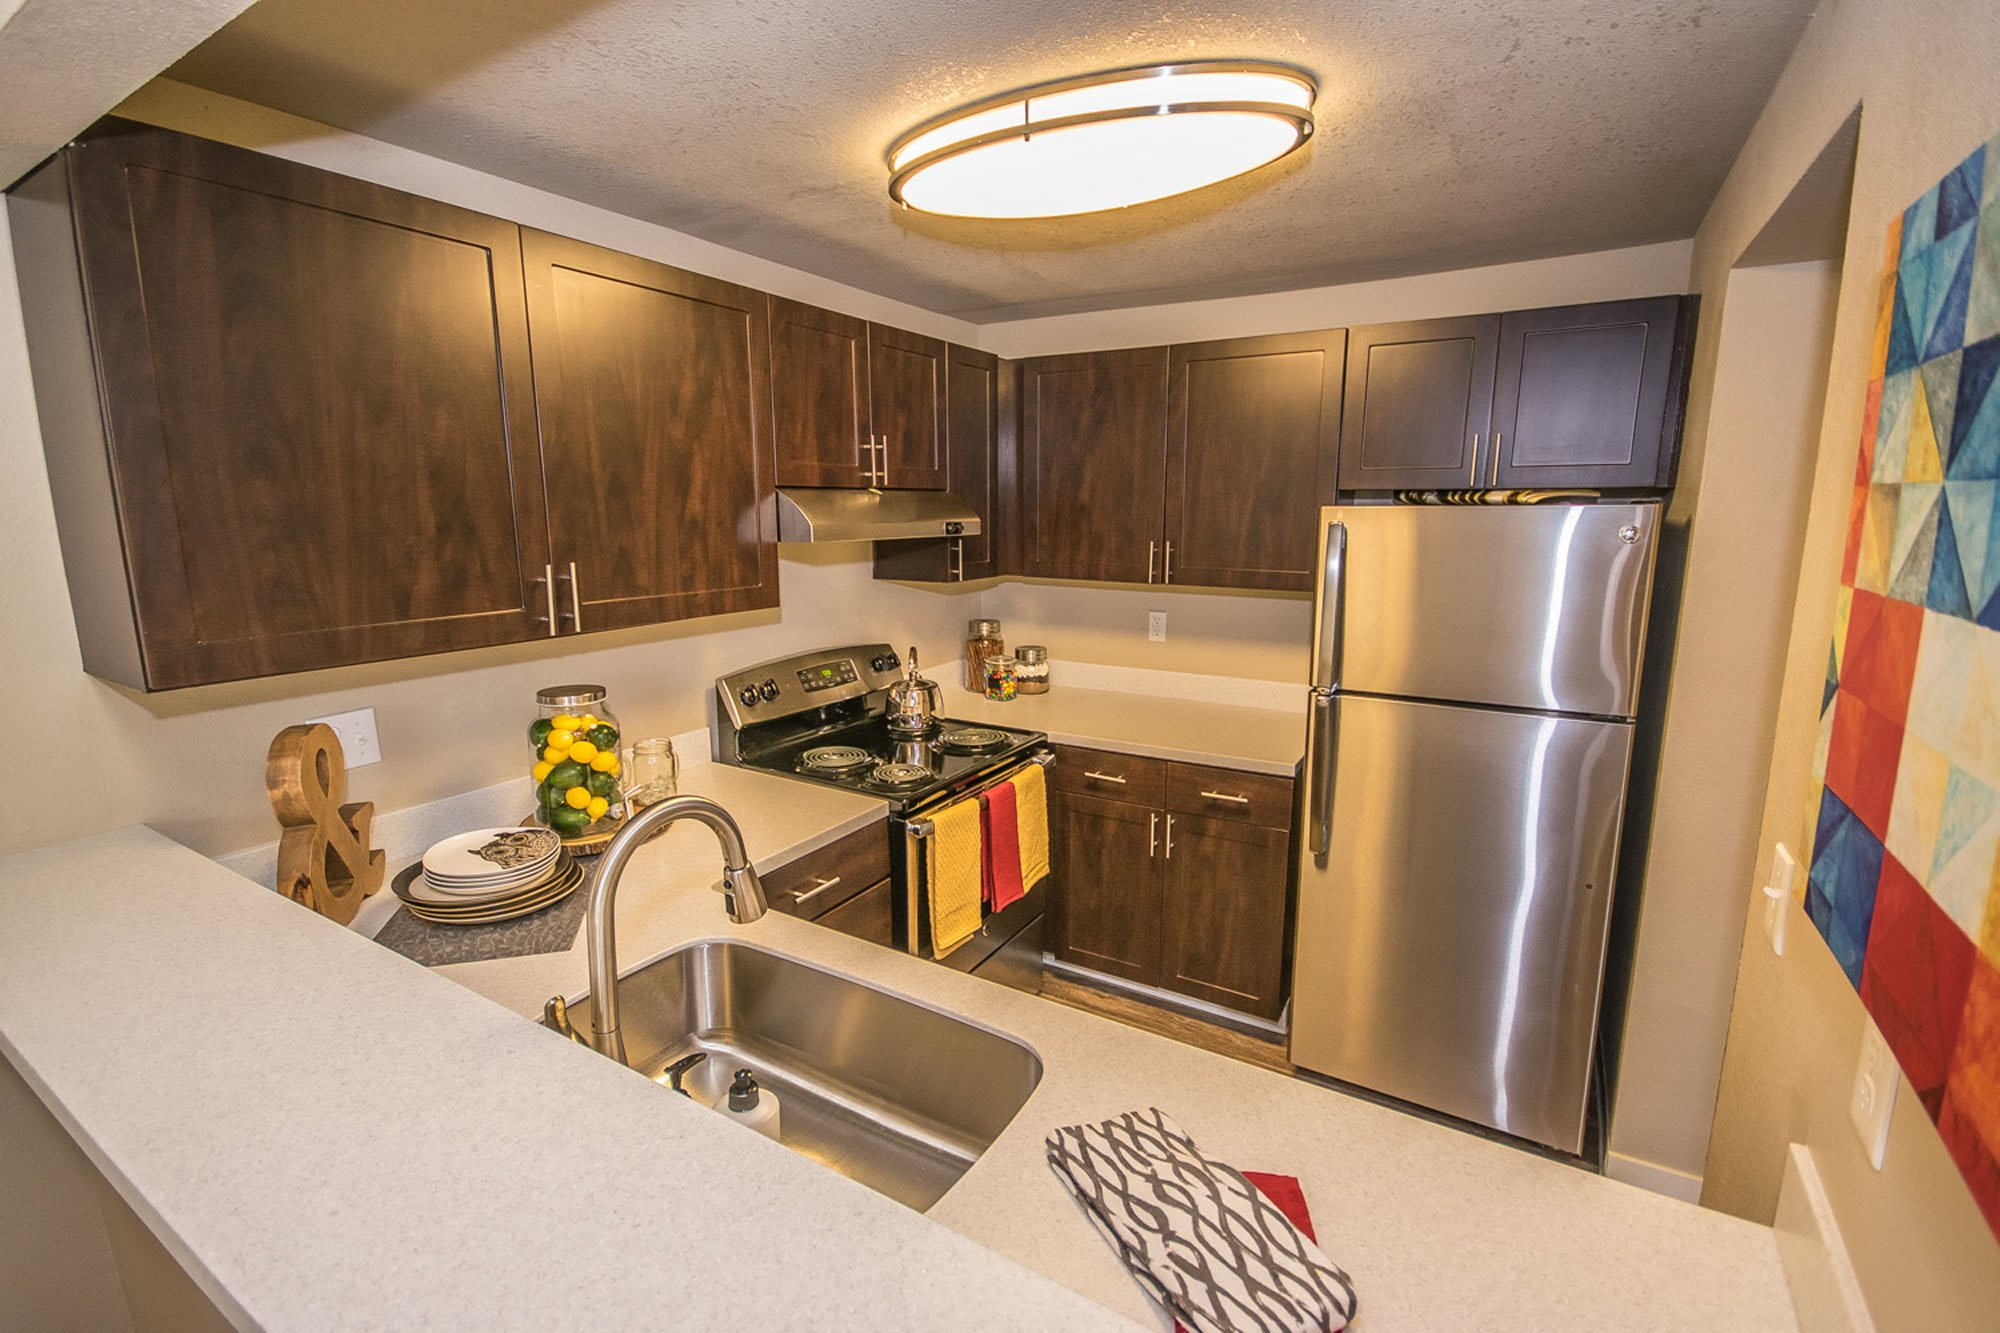 Apartments in Tacoma-The Fairways Apartments Kitchen with Matching Stainless-Steel Appliances, Lots of Storage Space, and Modern Lighting